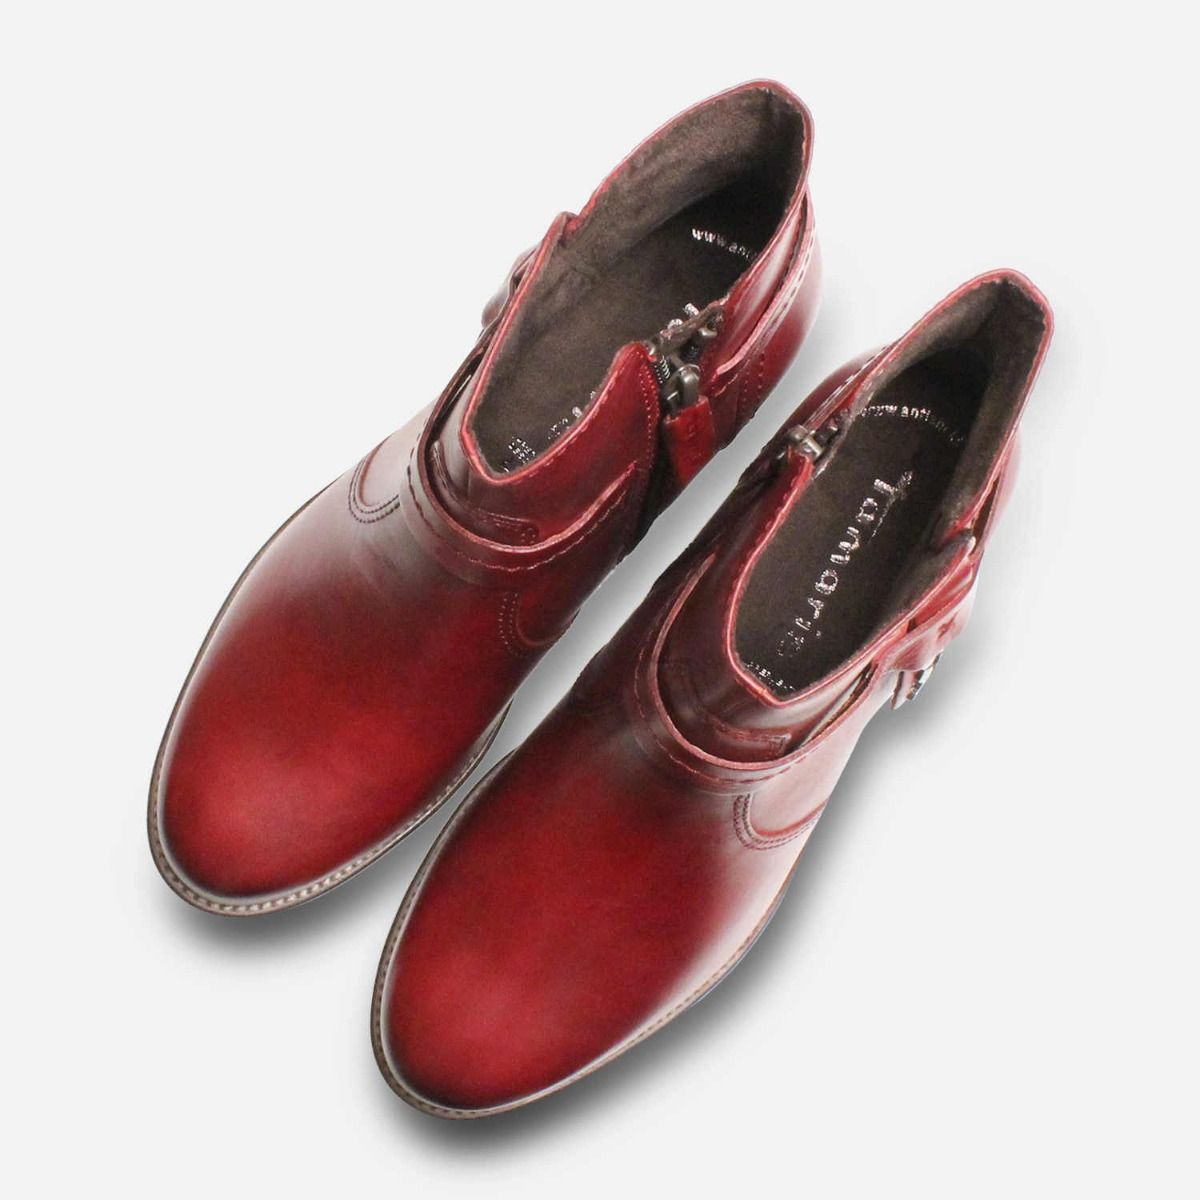 Burgundy Tamaris Ladies Ankle Boots with Side Zip